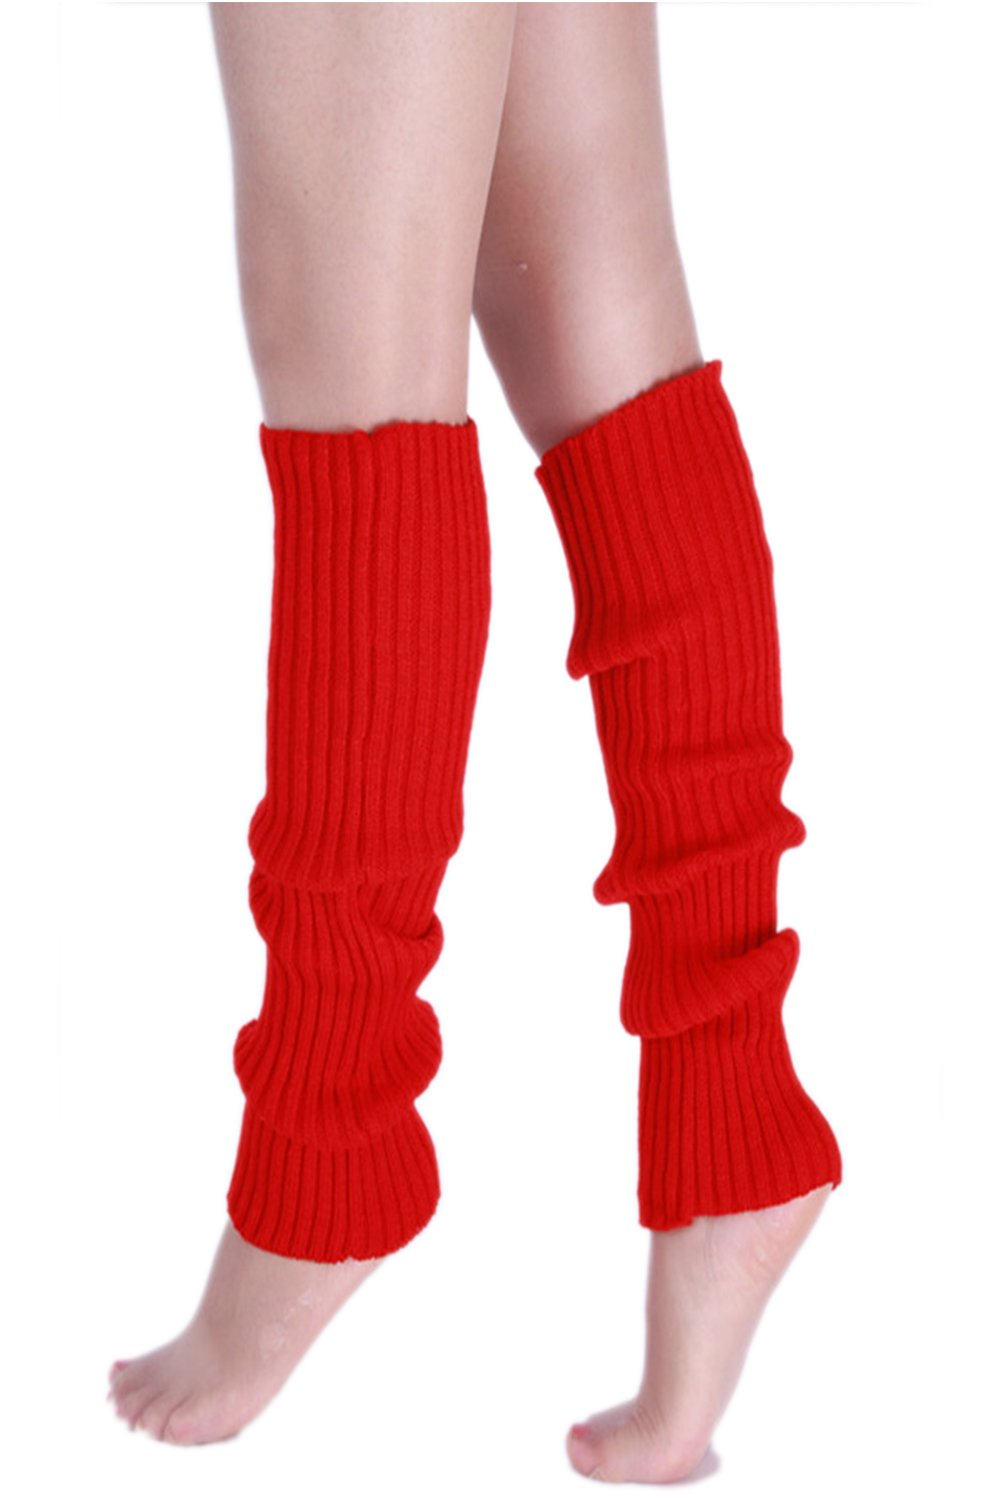 YACUN Women's Winter Cold Weather Solid Knit Long Leg Warmers White F CAOK005White_F